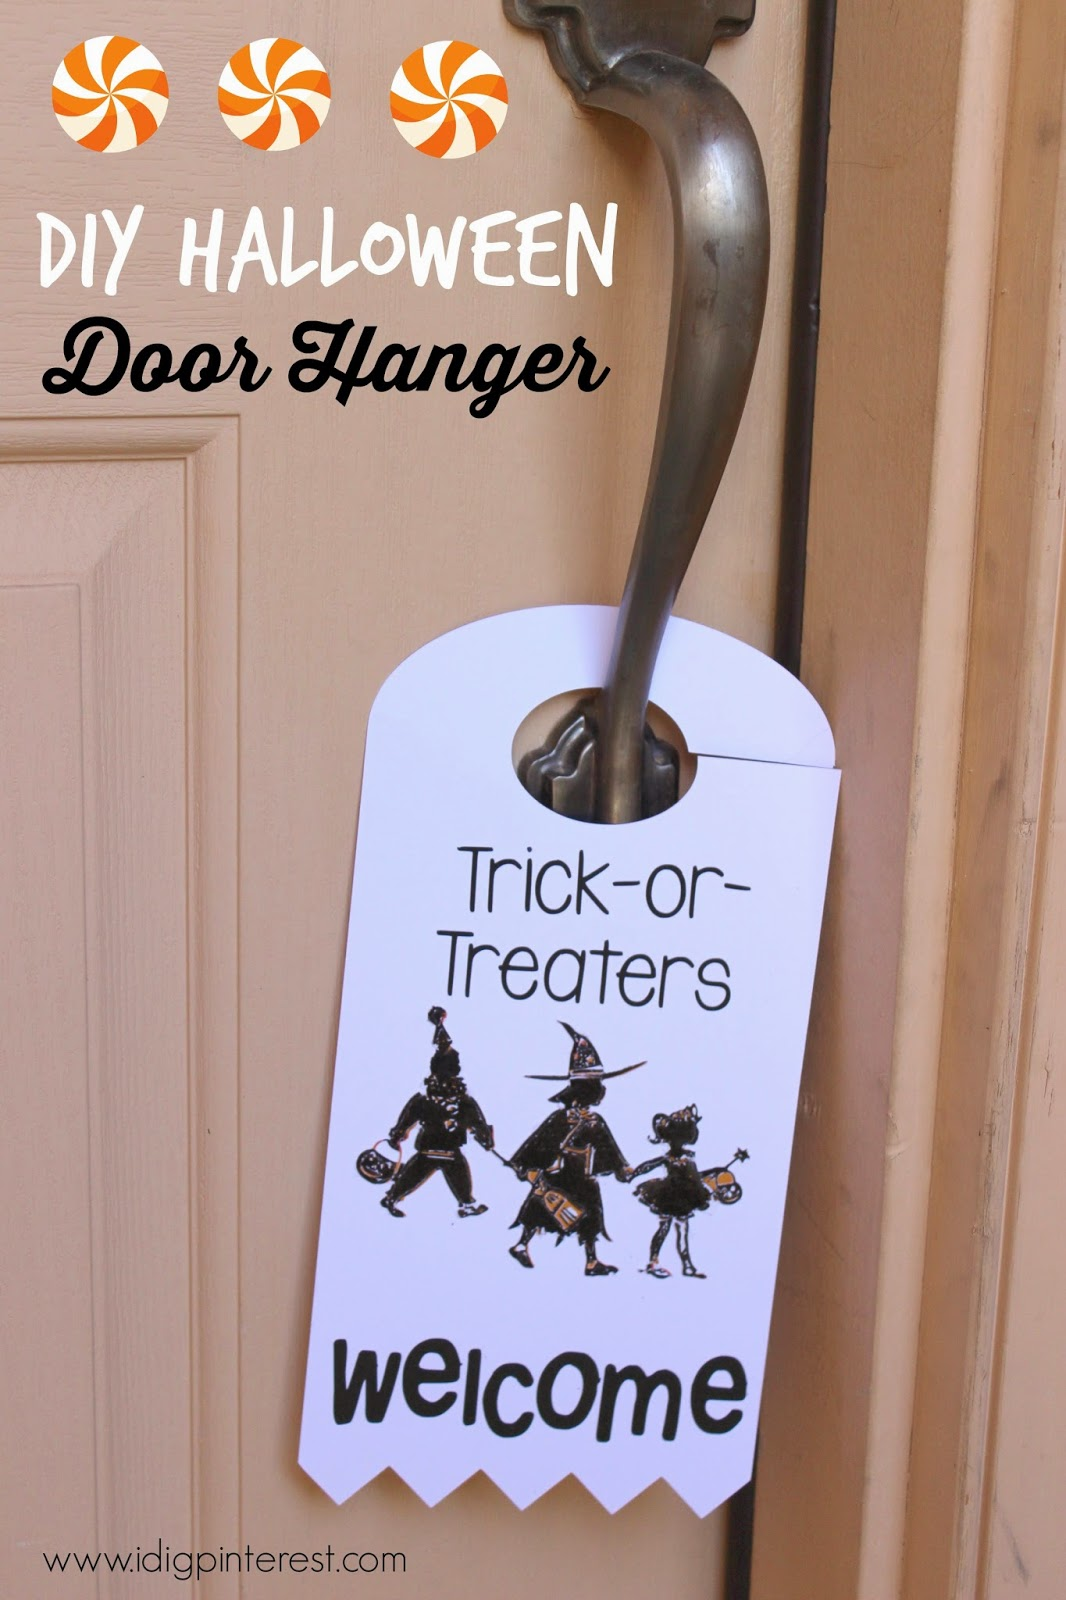 Trick-or-Treaters Welcome Door Hanger2